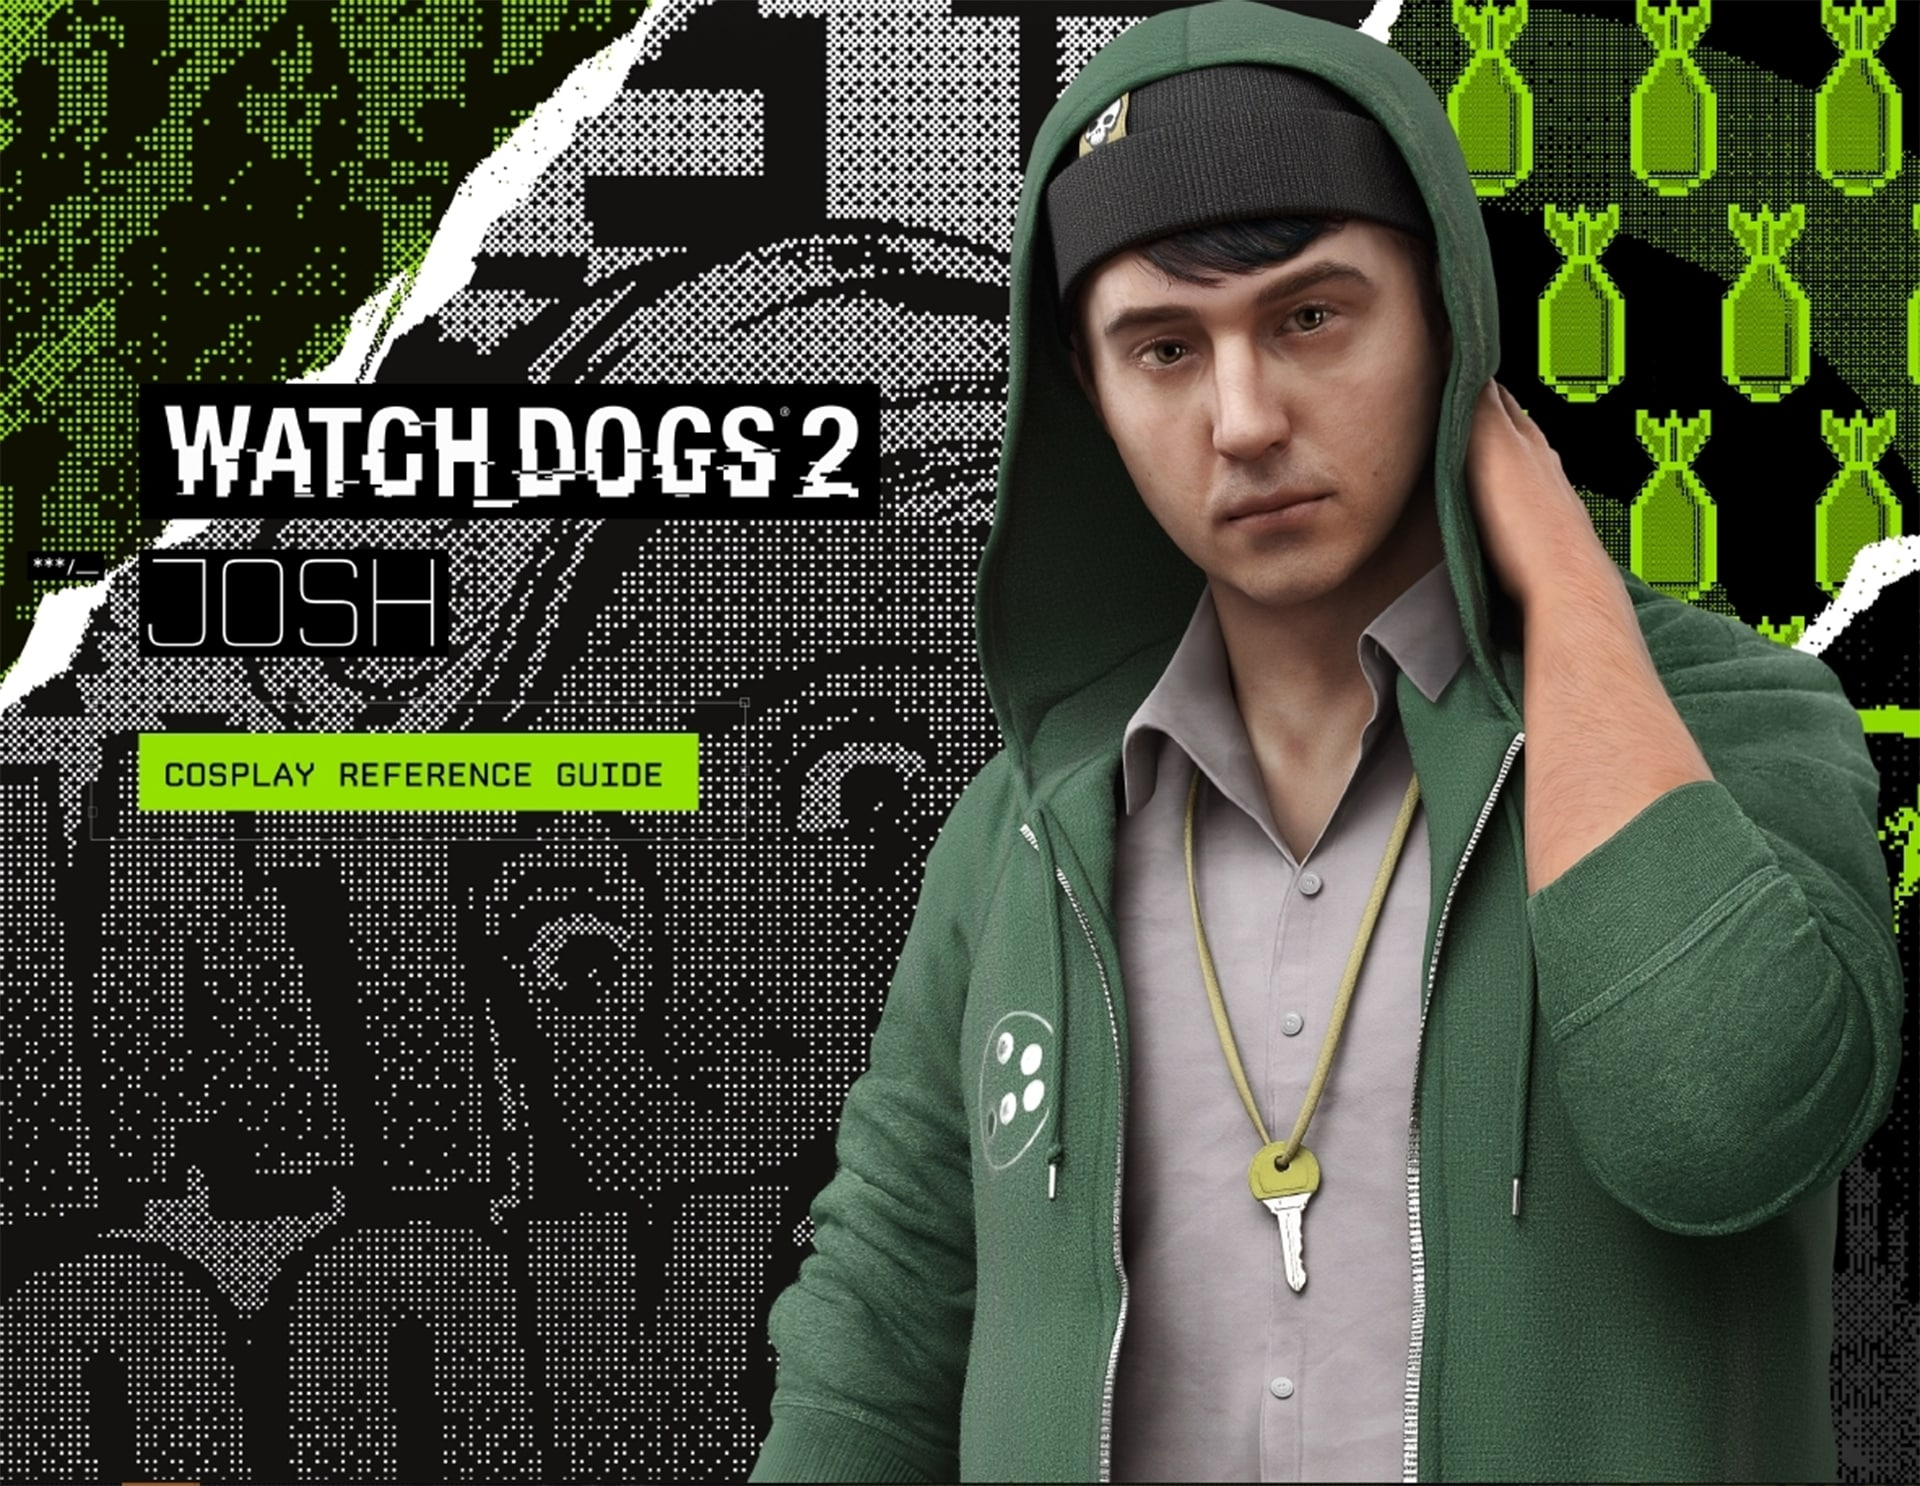 WD2_JoshCosplay_header_emea